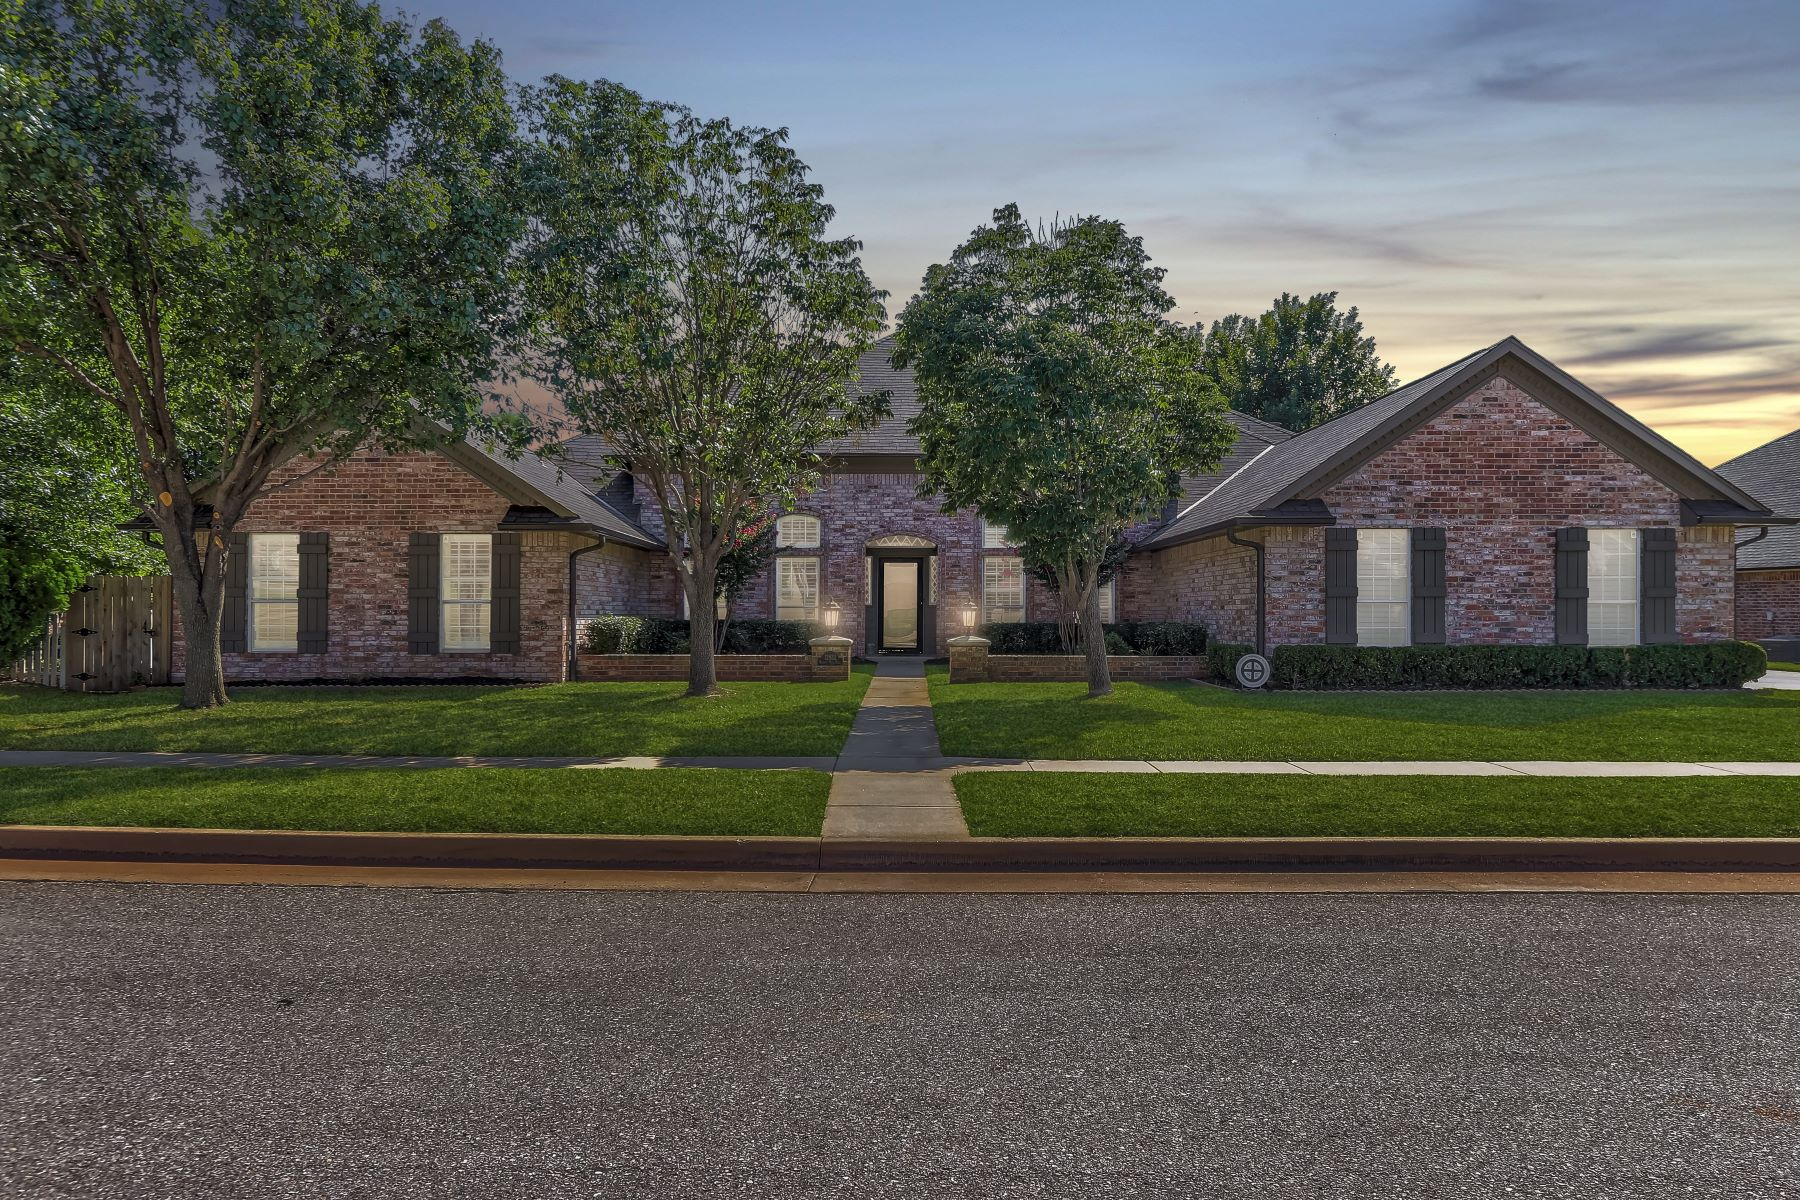 Single Family Homes for Active at One Level Dream on the Greenbelt 12832 Knight Hill Road Oklahoma City, Oklahoma 73142 United States